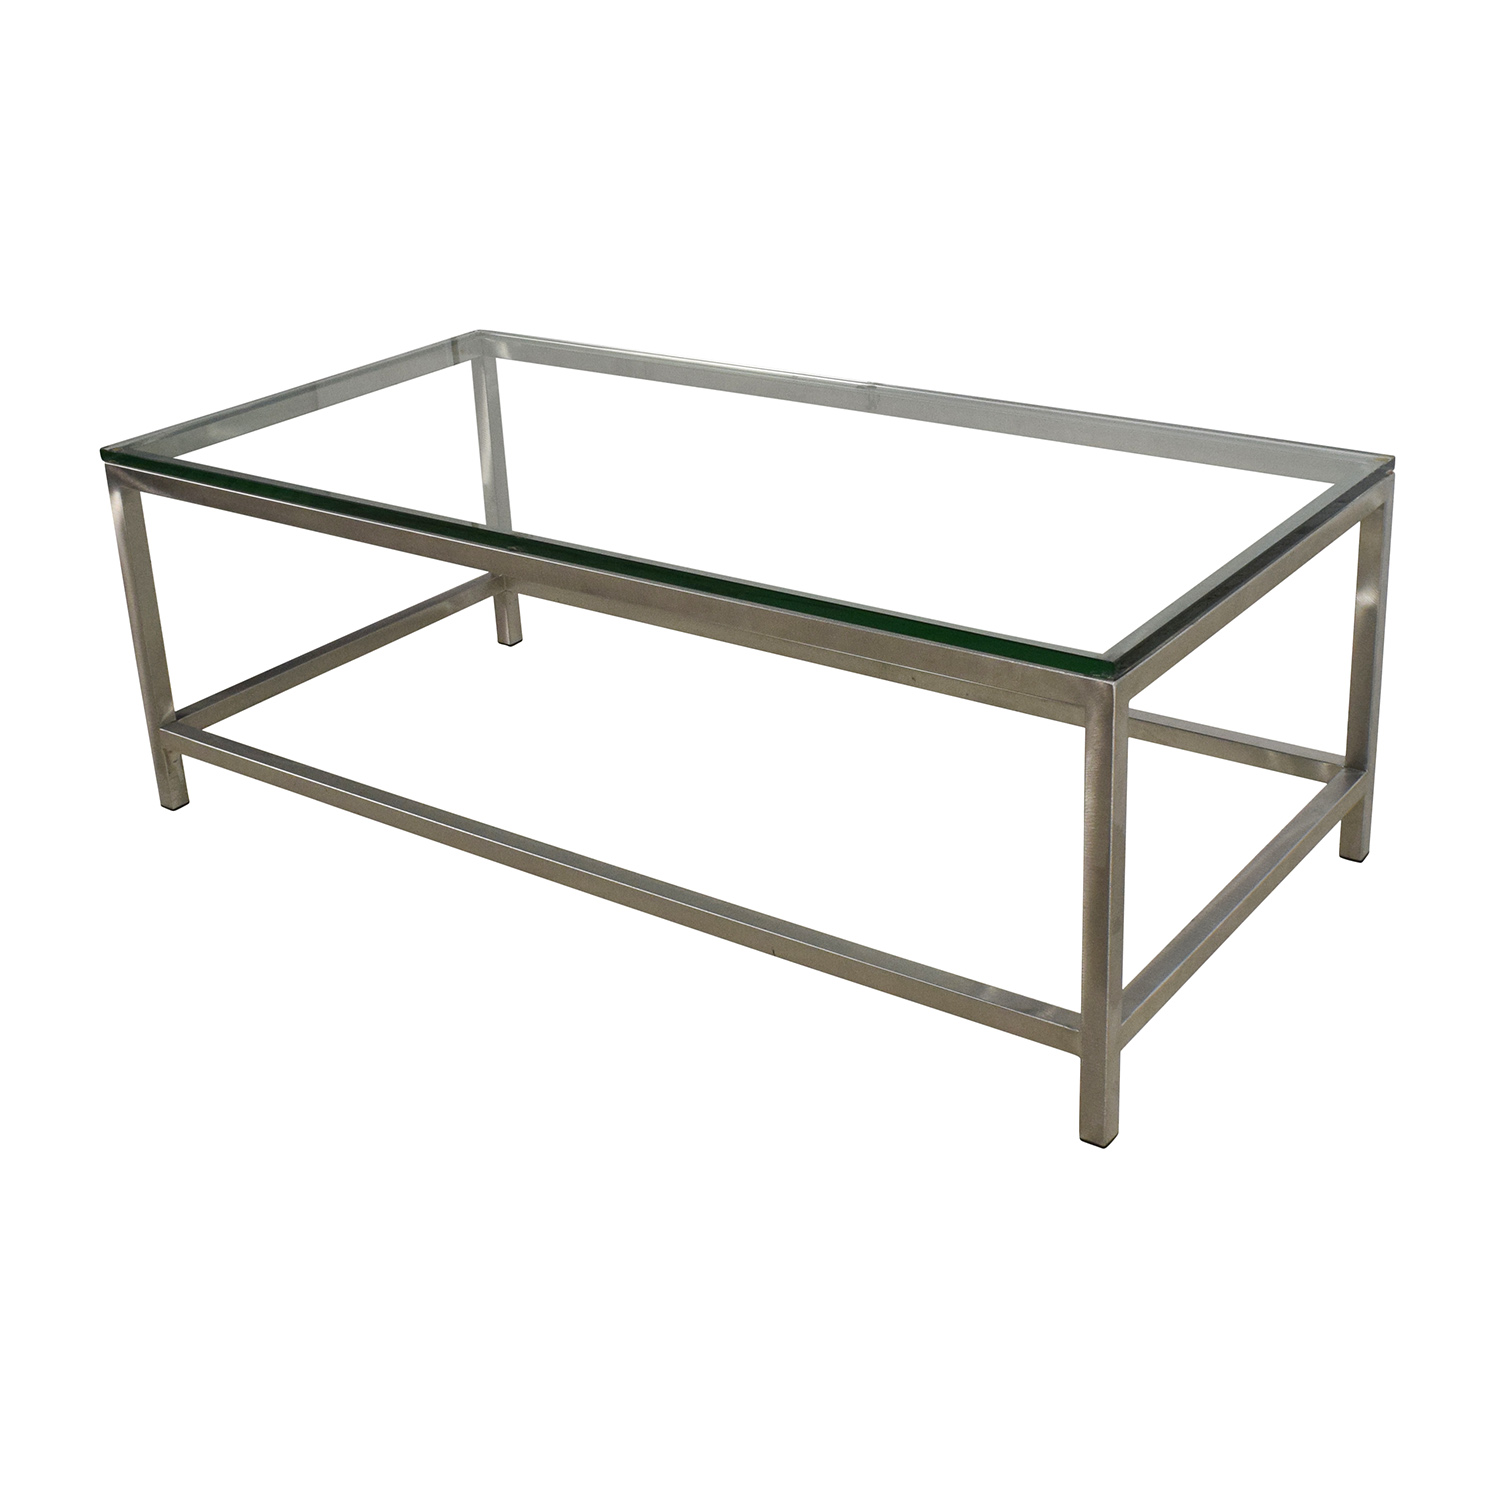 Great ... Crate And Barrel Crate U0026 Barrel Era Rectangular Glass Top Coffee Table  ...